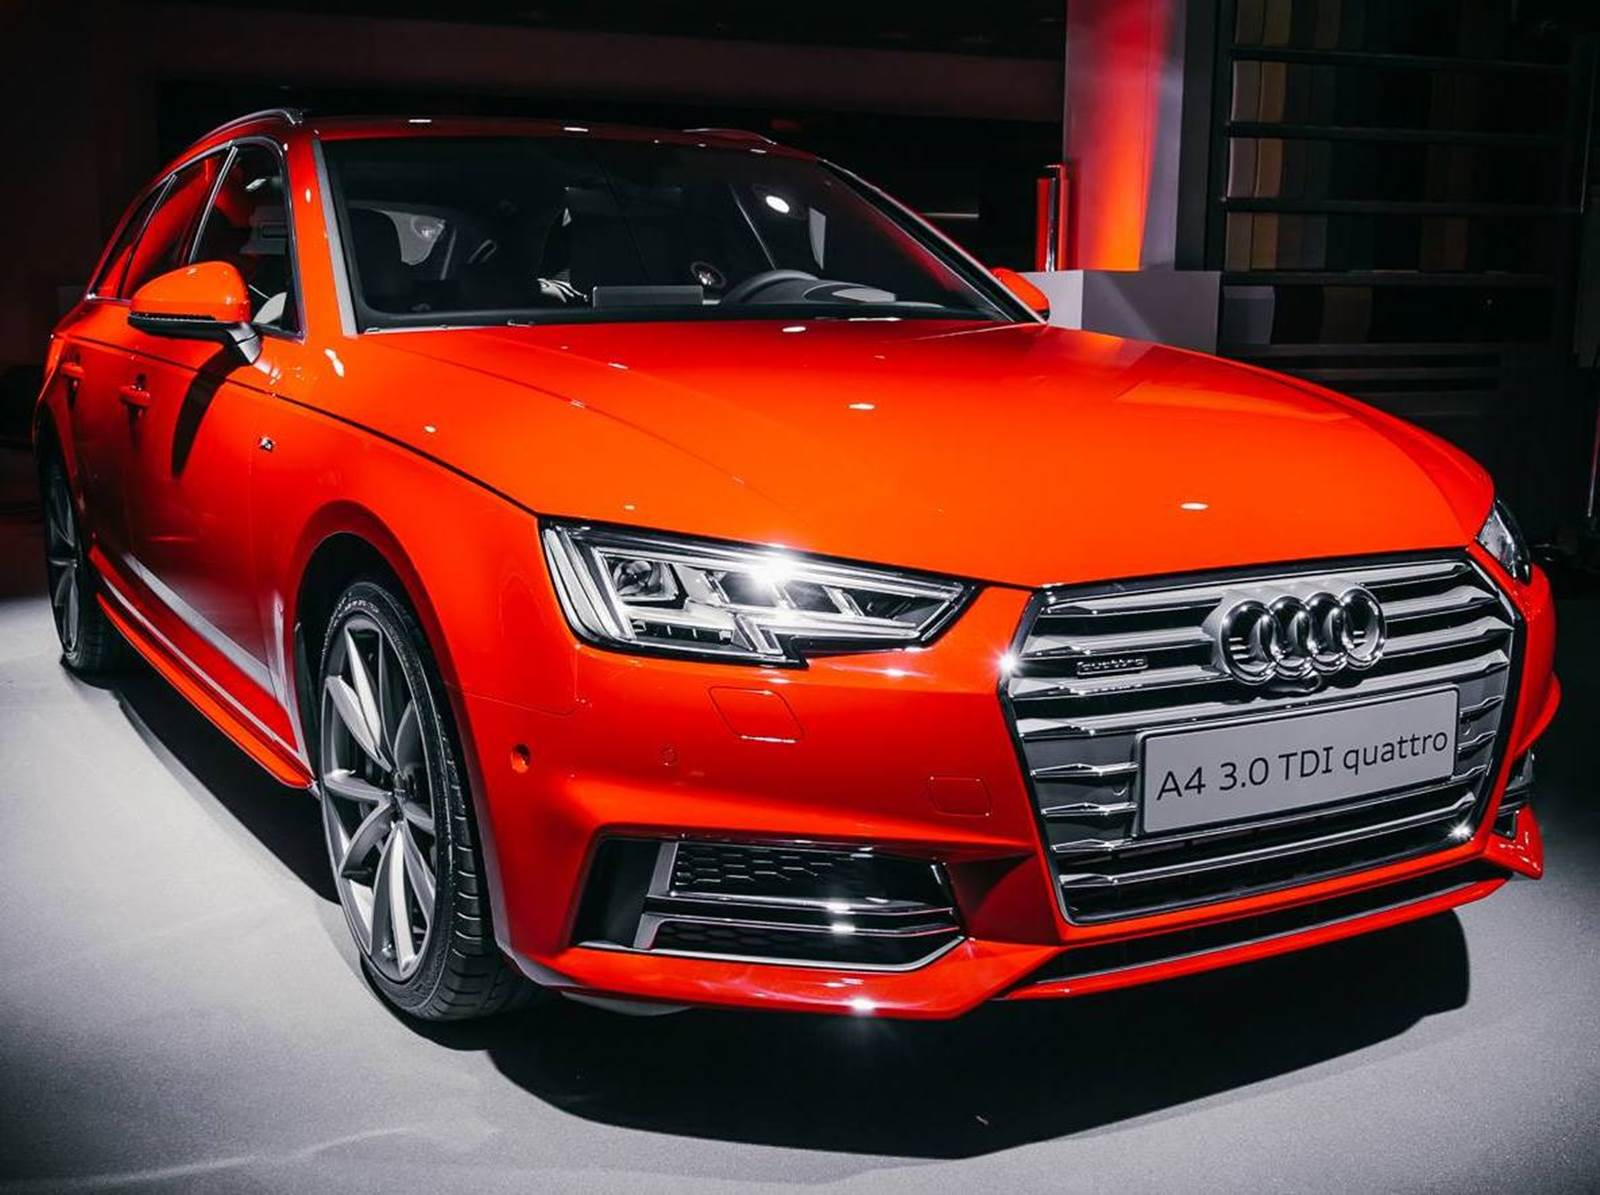 india-bound 2016 audi a4 priced at gbp 25,900 - uk